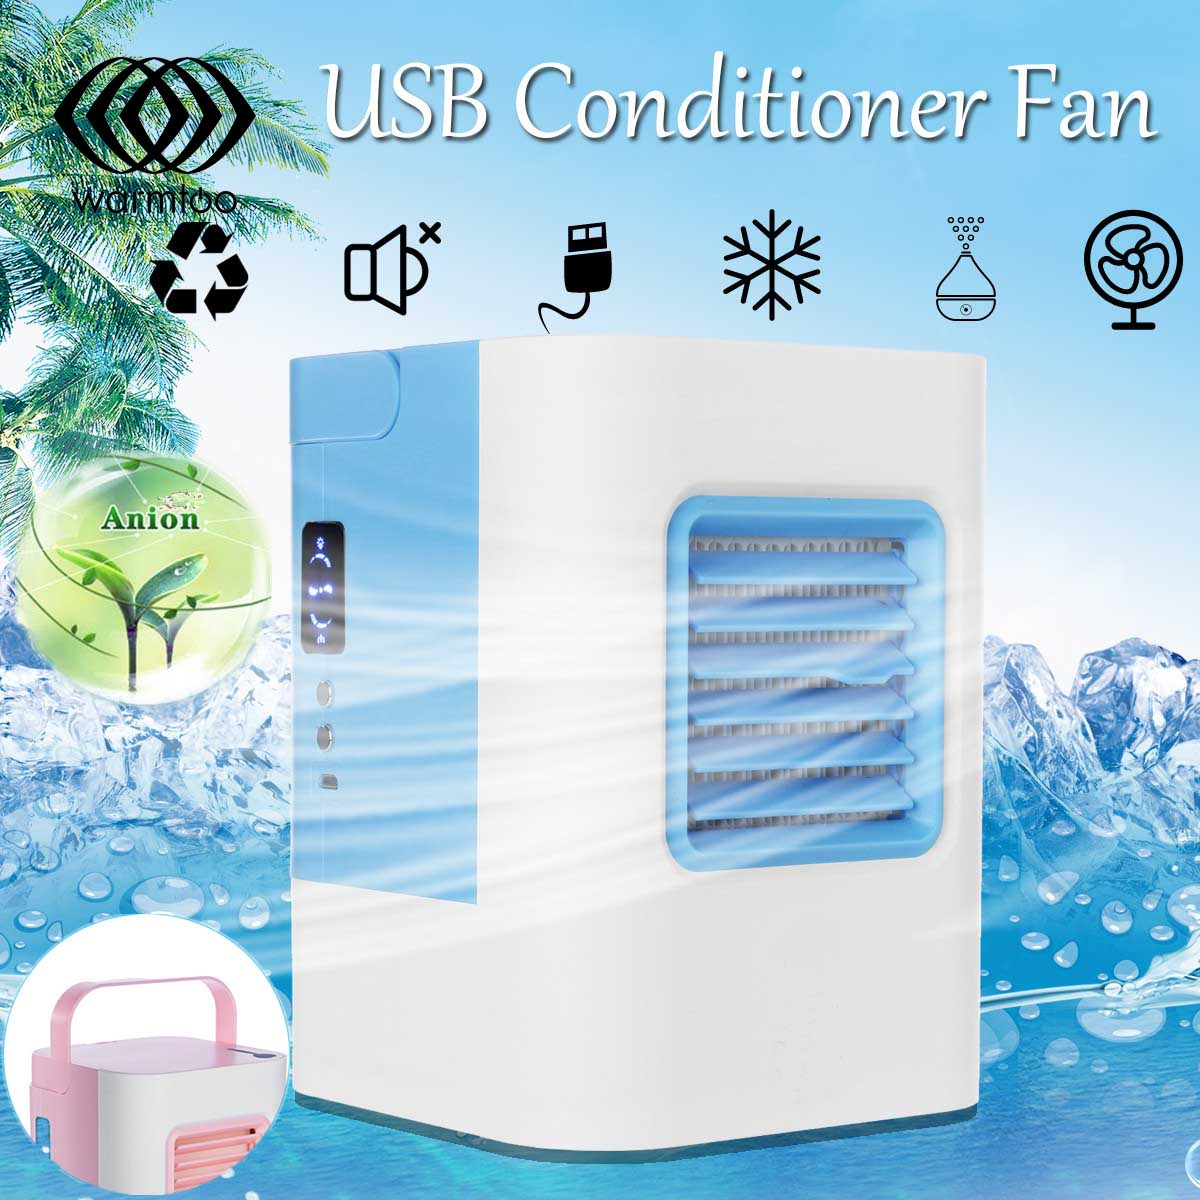 USB Conditioner Fan Refrigeration Air Personal Space Cooler Portable Air Conditioner Cooling Fan